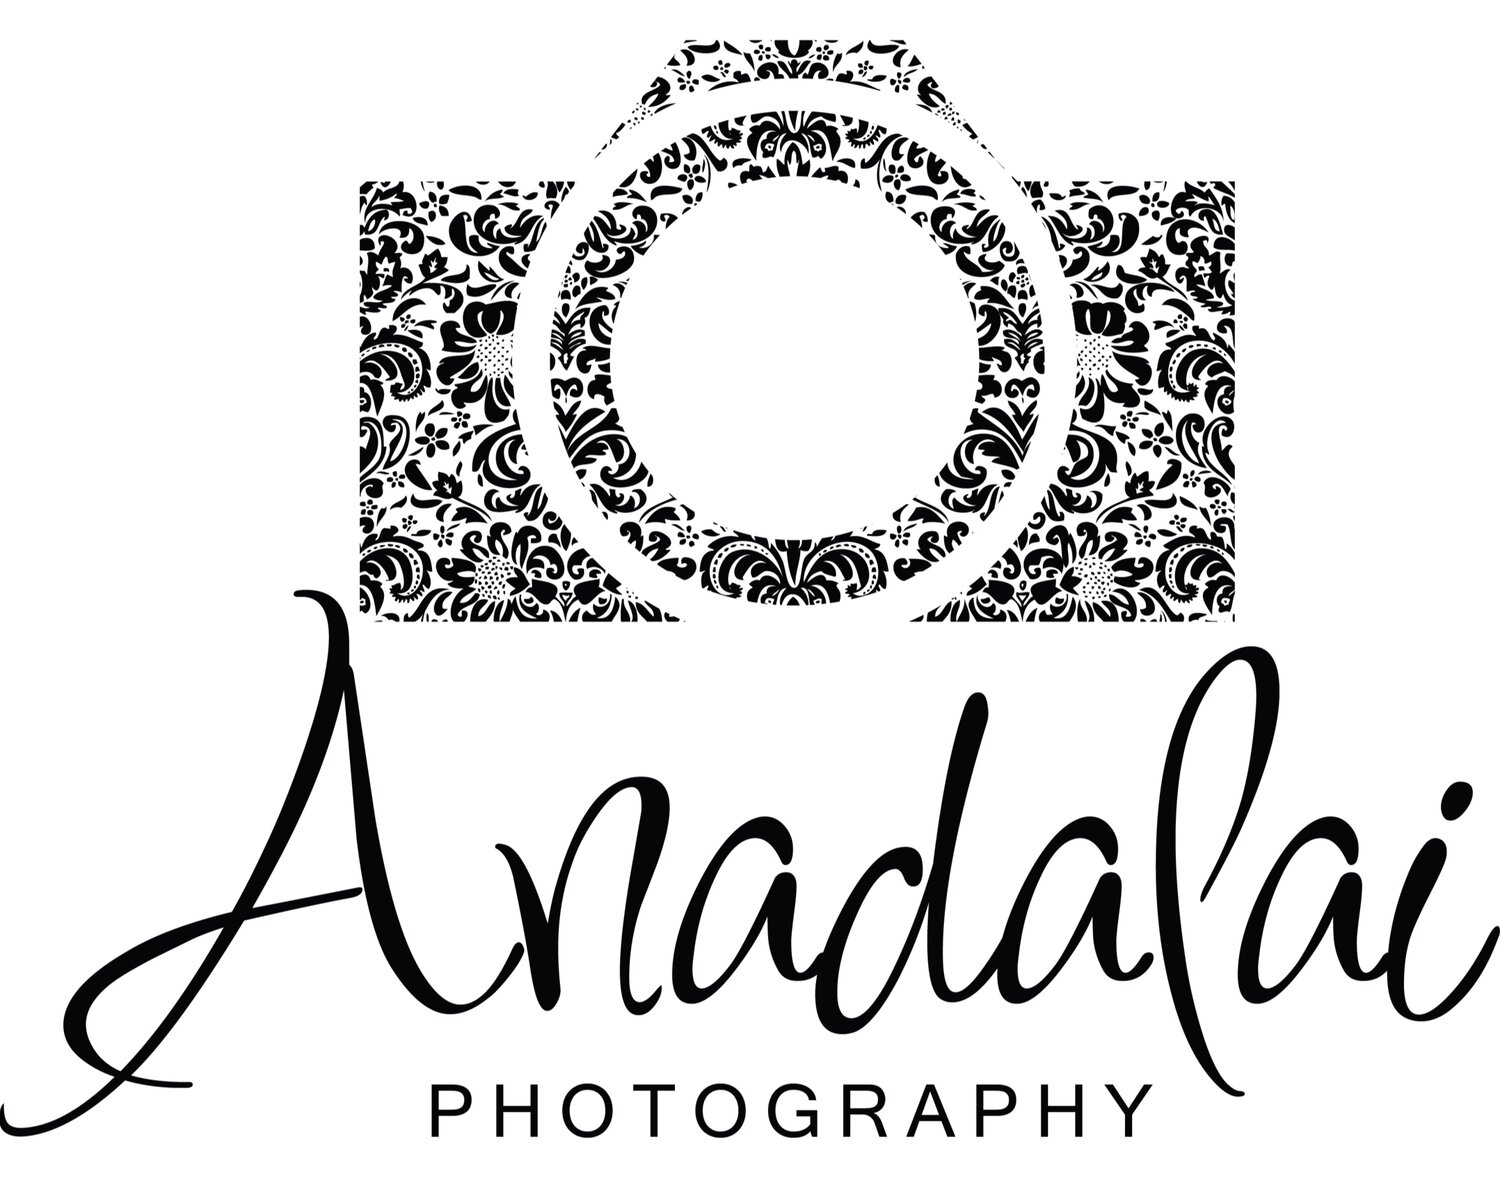 Anadalai Photography